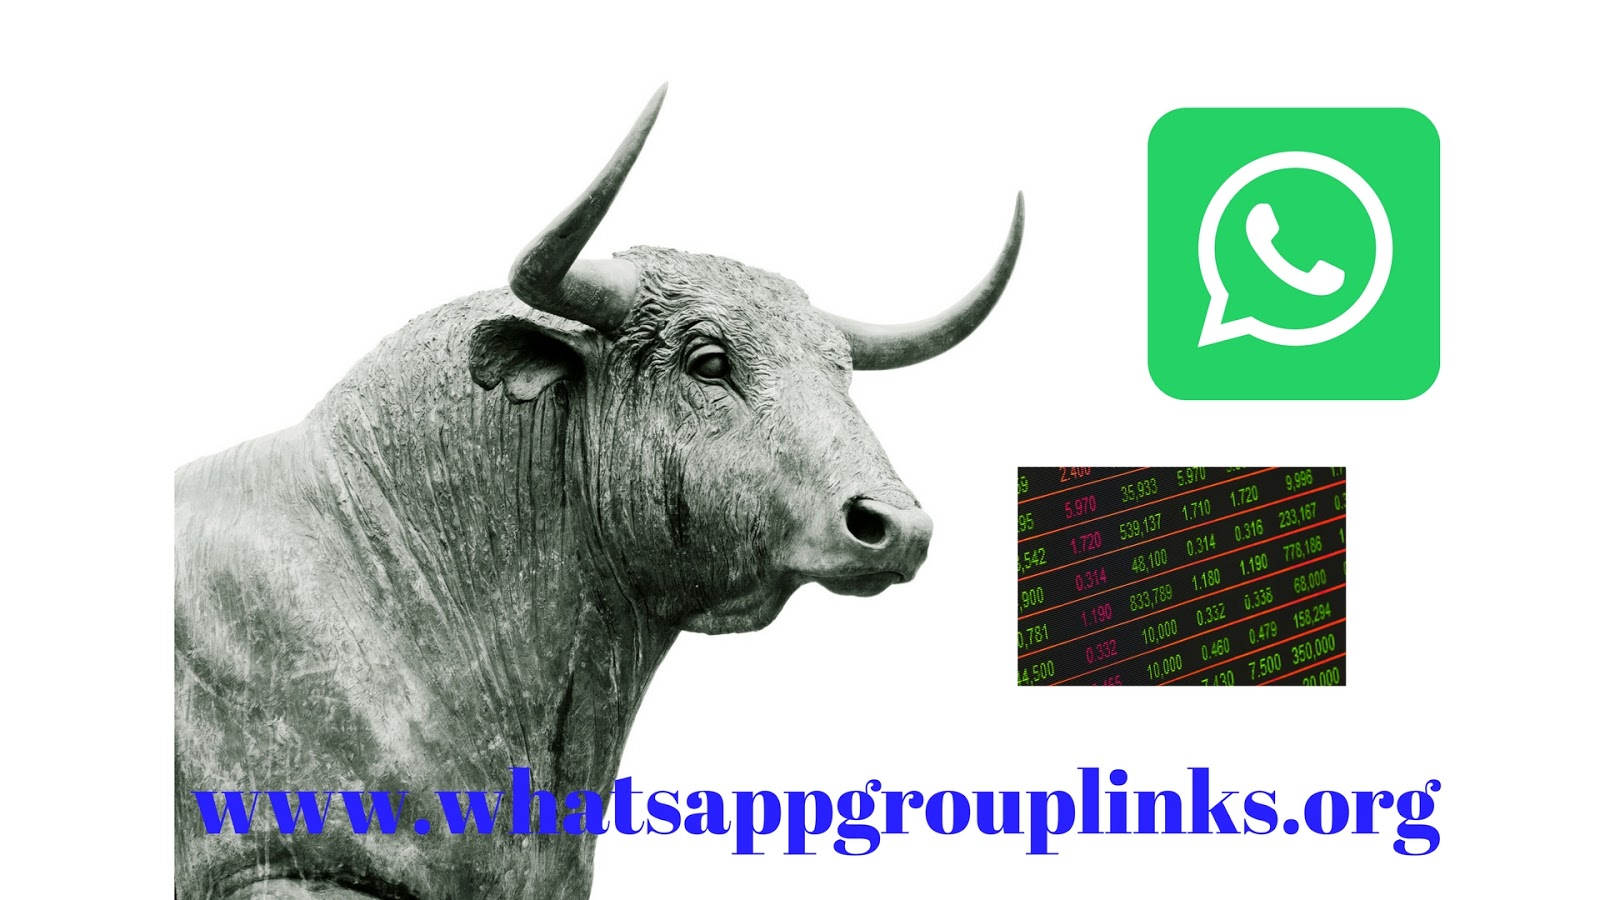 JOIN SHARE AND STOCK MARKET WHATSAPP GROUP LINKS LIST - Whatsapp